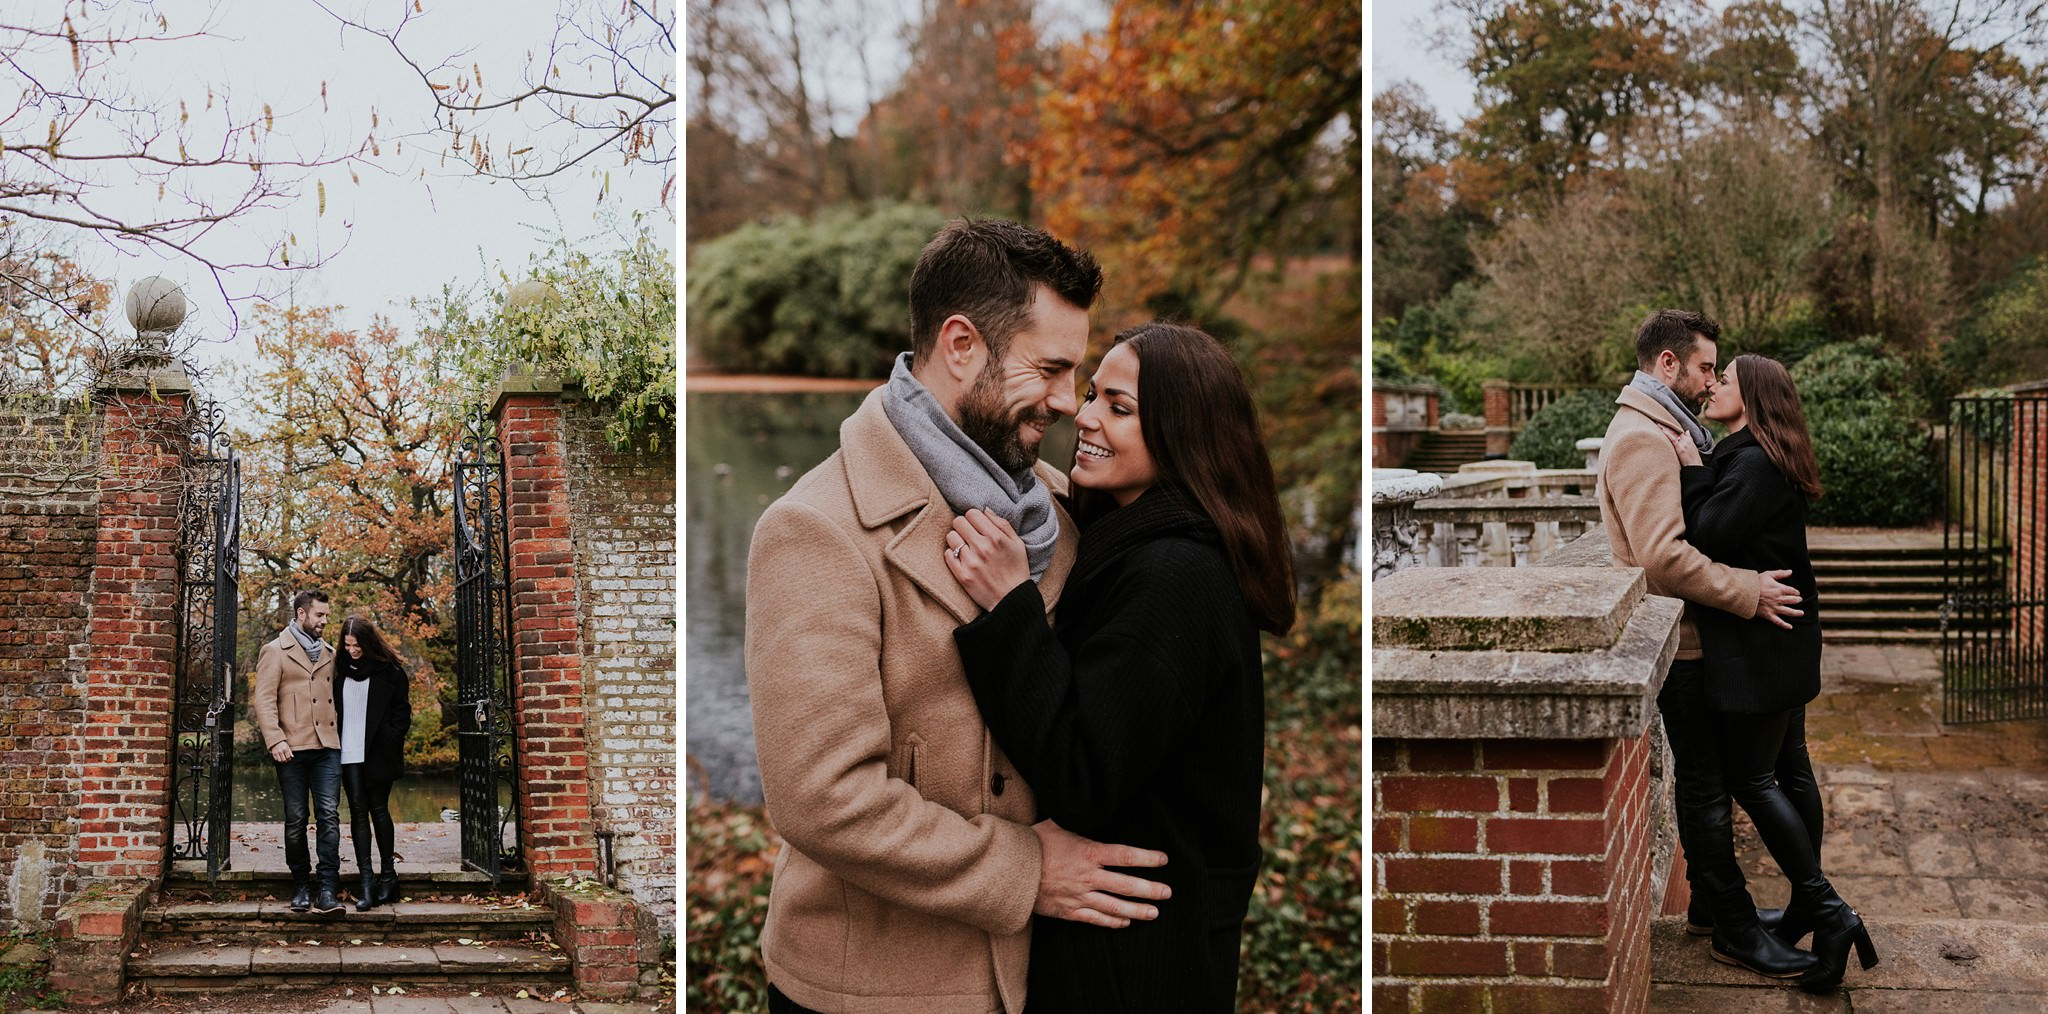 Couple engagement session in Wimbledon